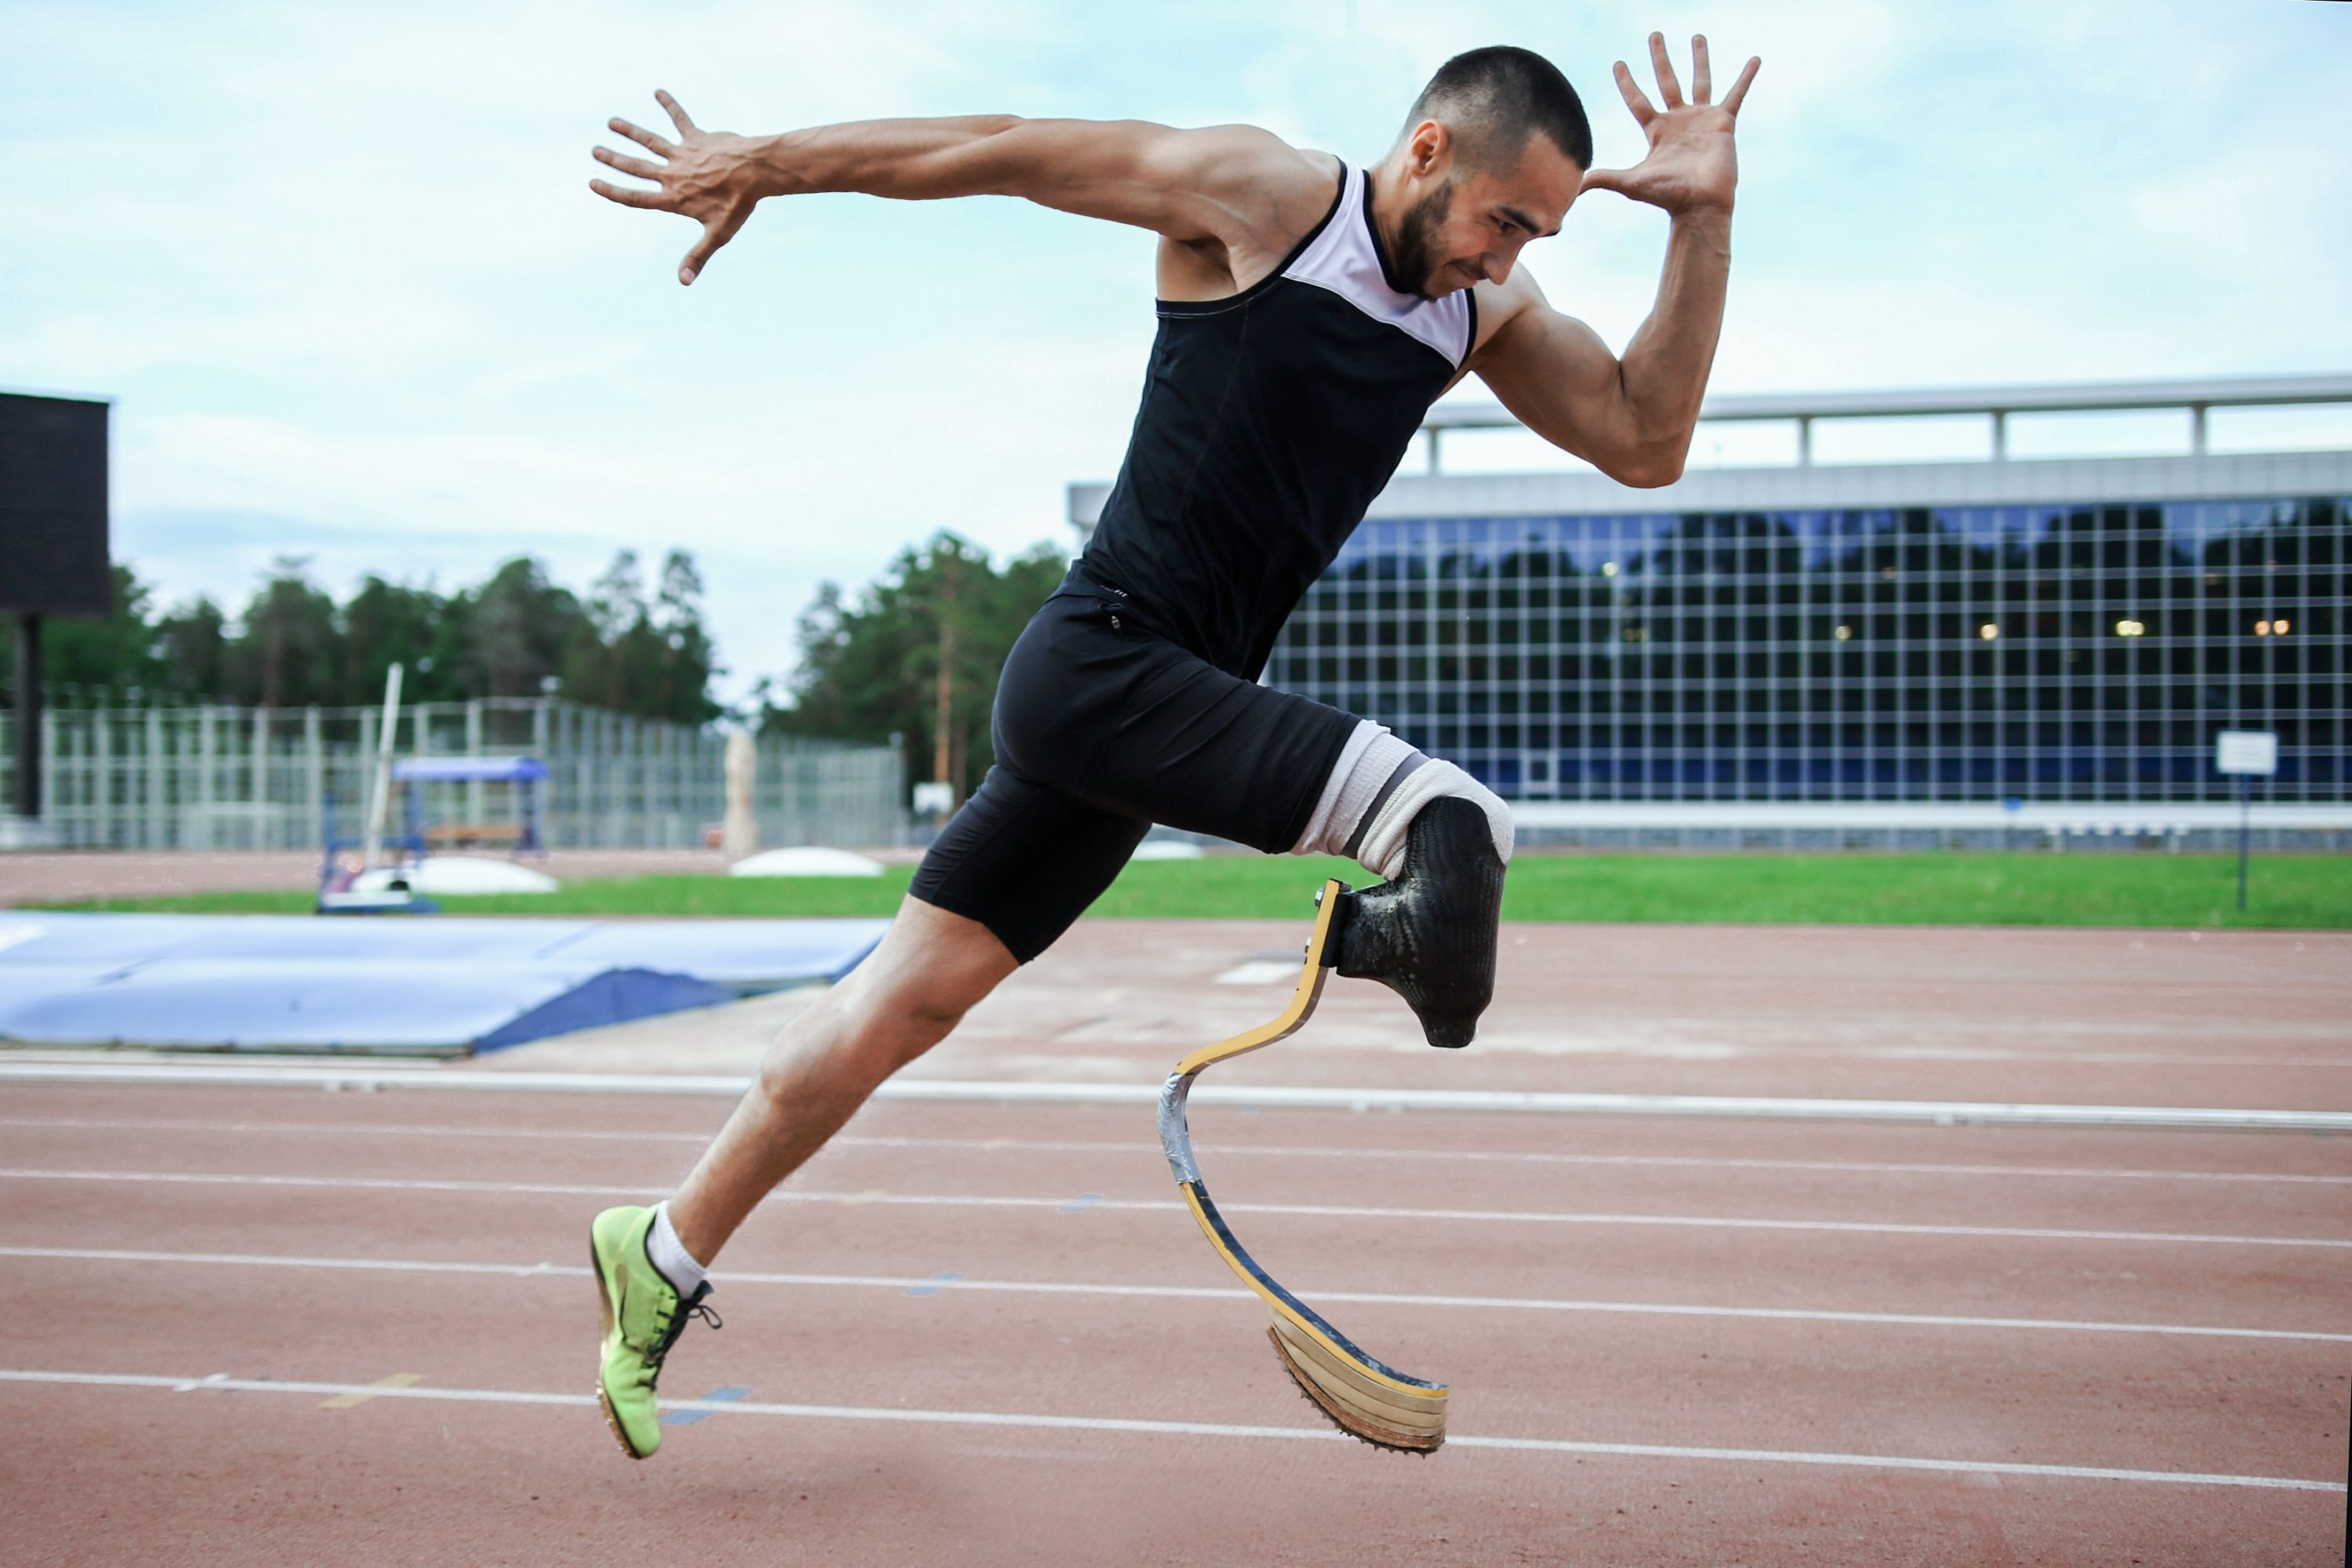 Orthoses and Prostheses